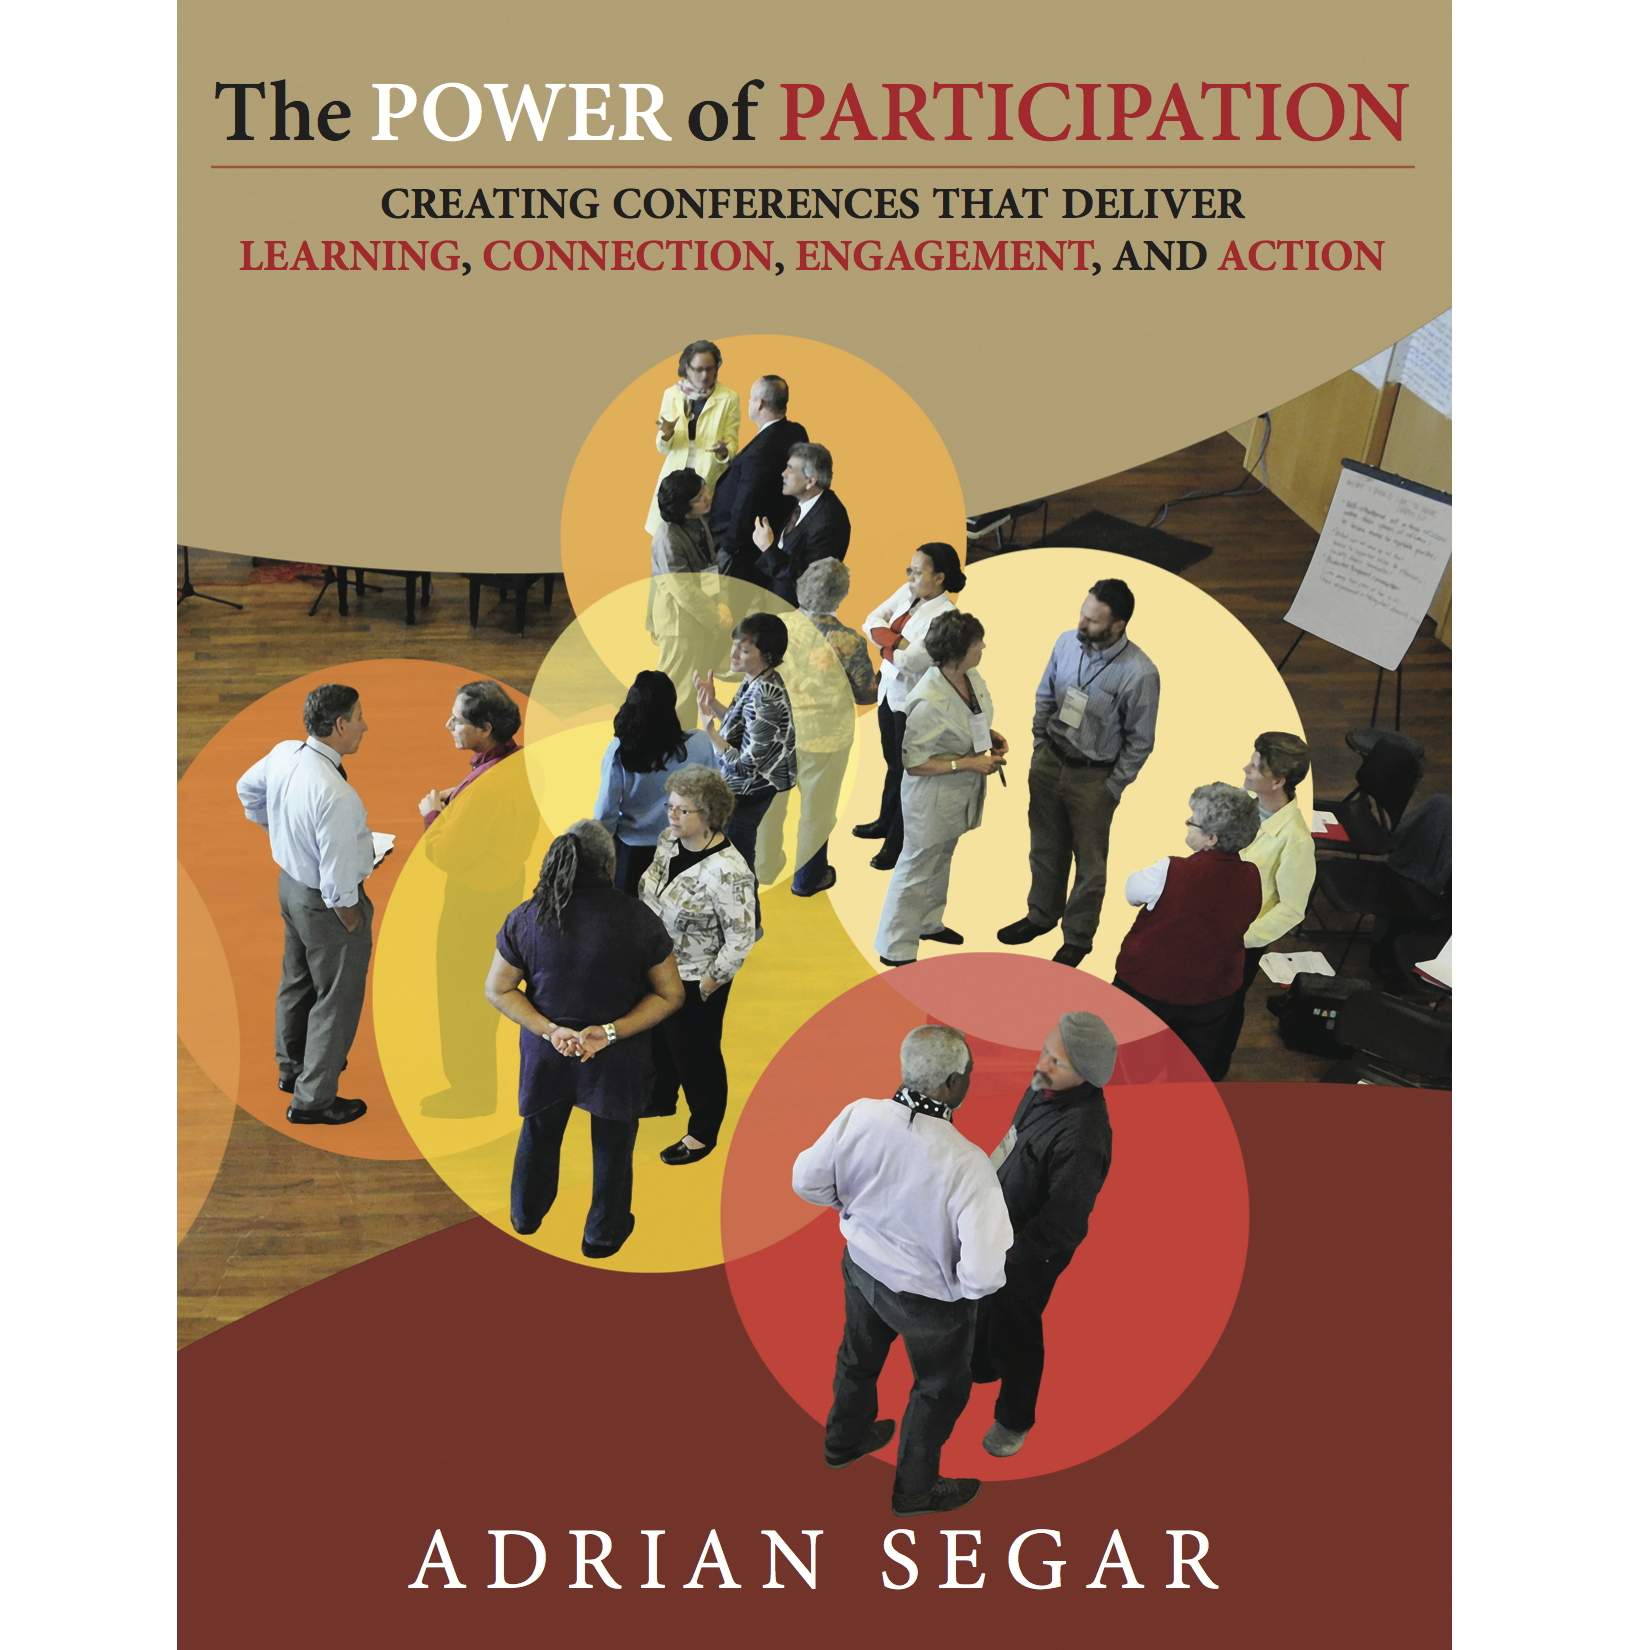 The Power of Participation: Creating Conferences That Deliver Learning, Connection, Engagement, and Action—combo (1 ebook license, 1 paperback)